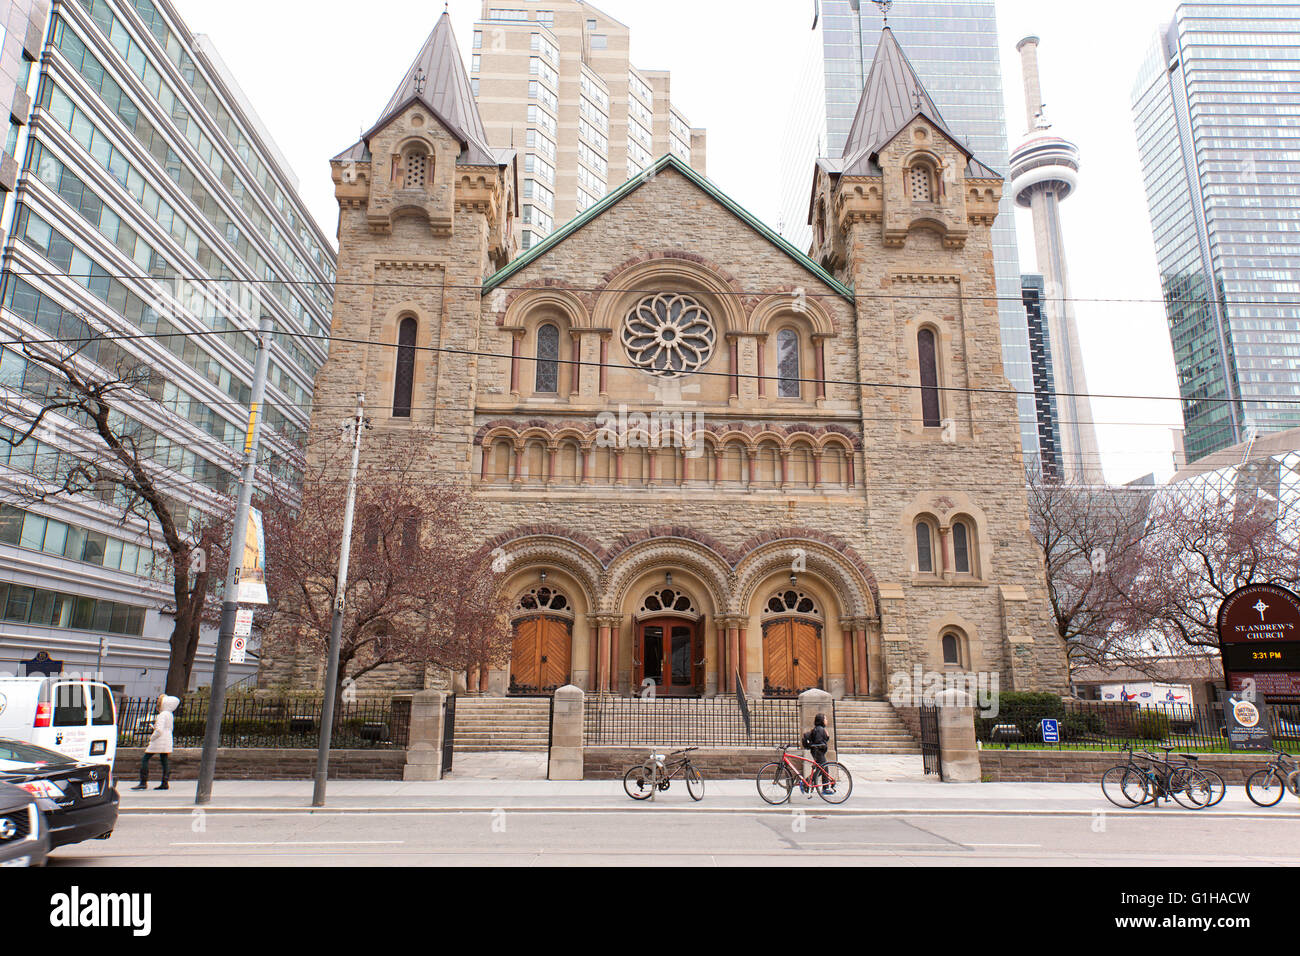 TORONTO - APRIL 28, 2016: St. Andrew's Church, is a large and historic Romanesque Revival Presbyterian church - Stock Image